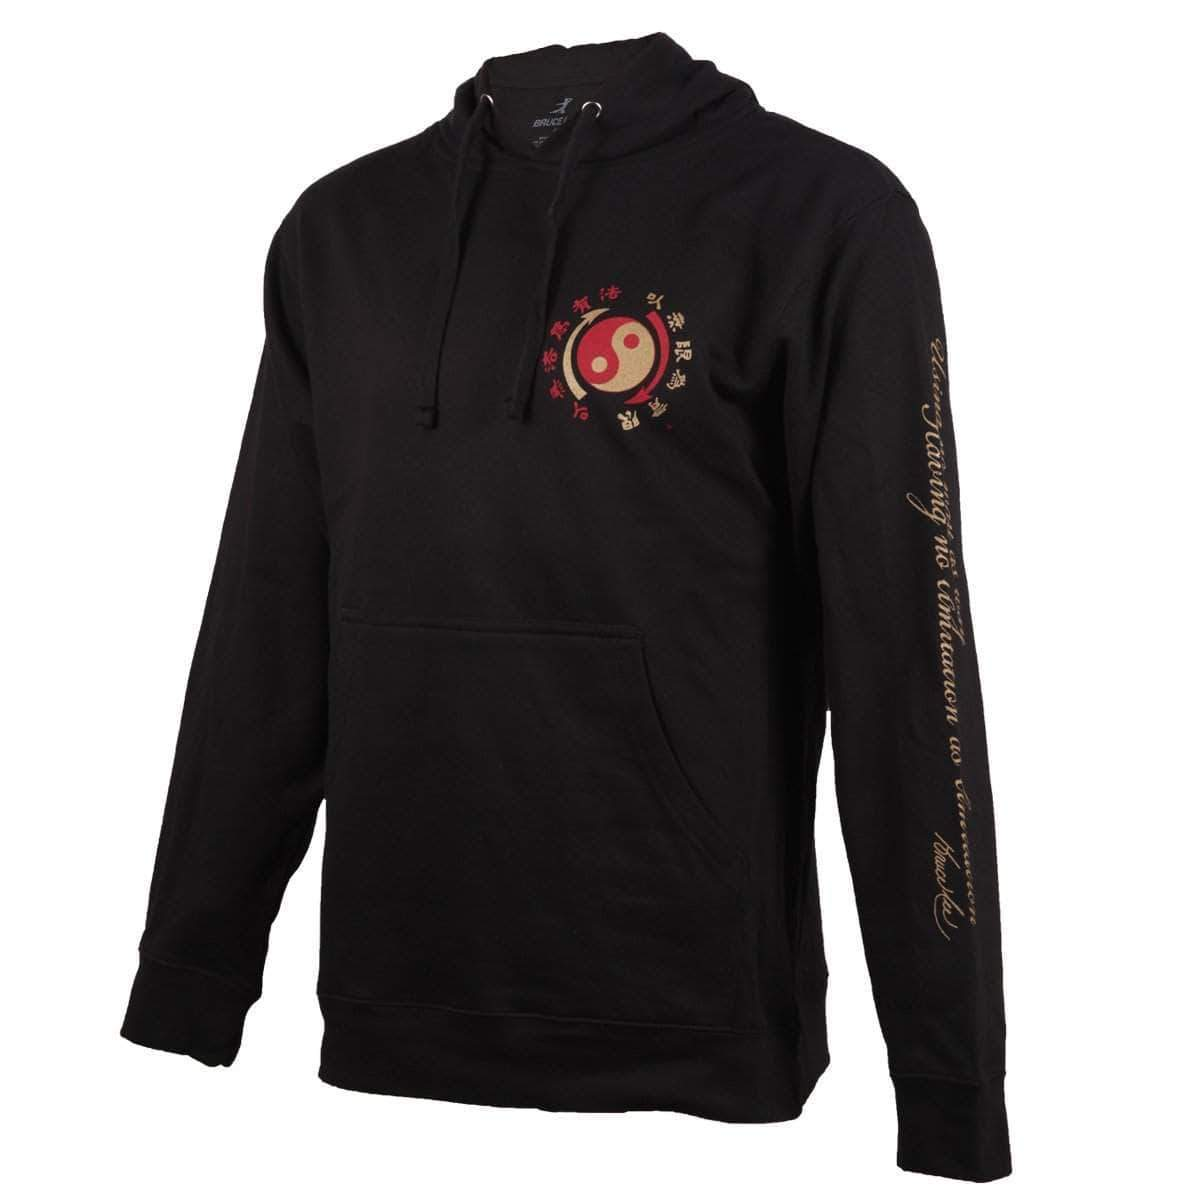 Core Symbol Pullover Hoodie - Small Only